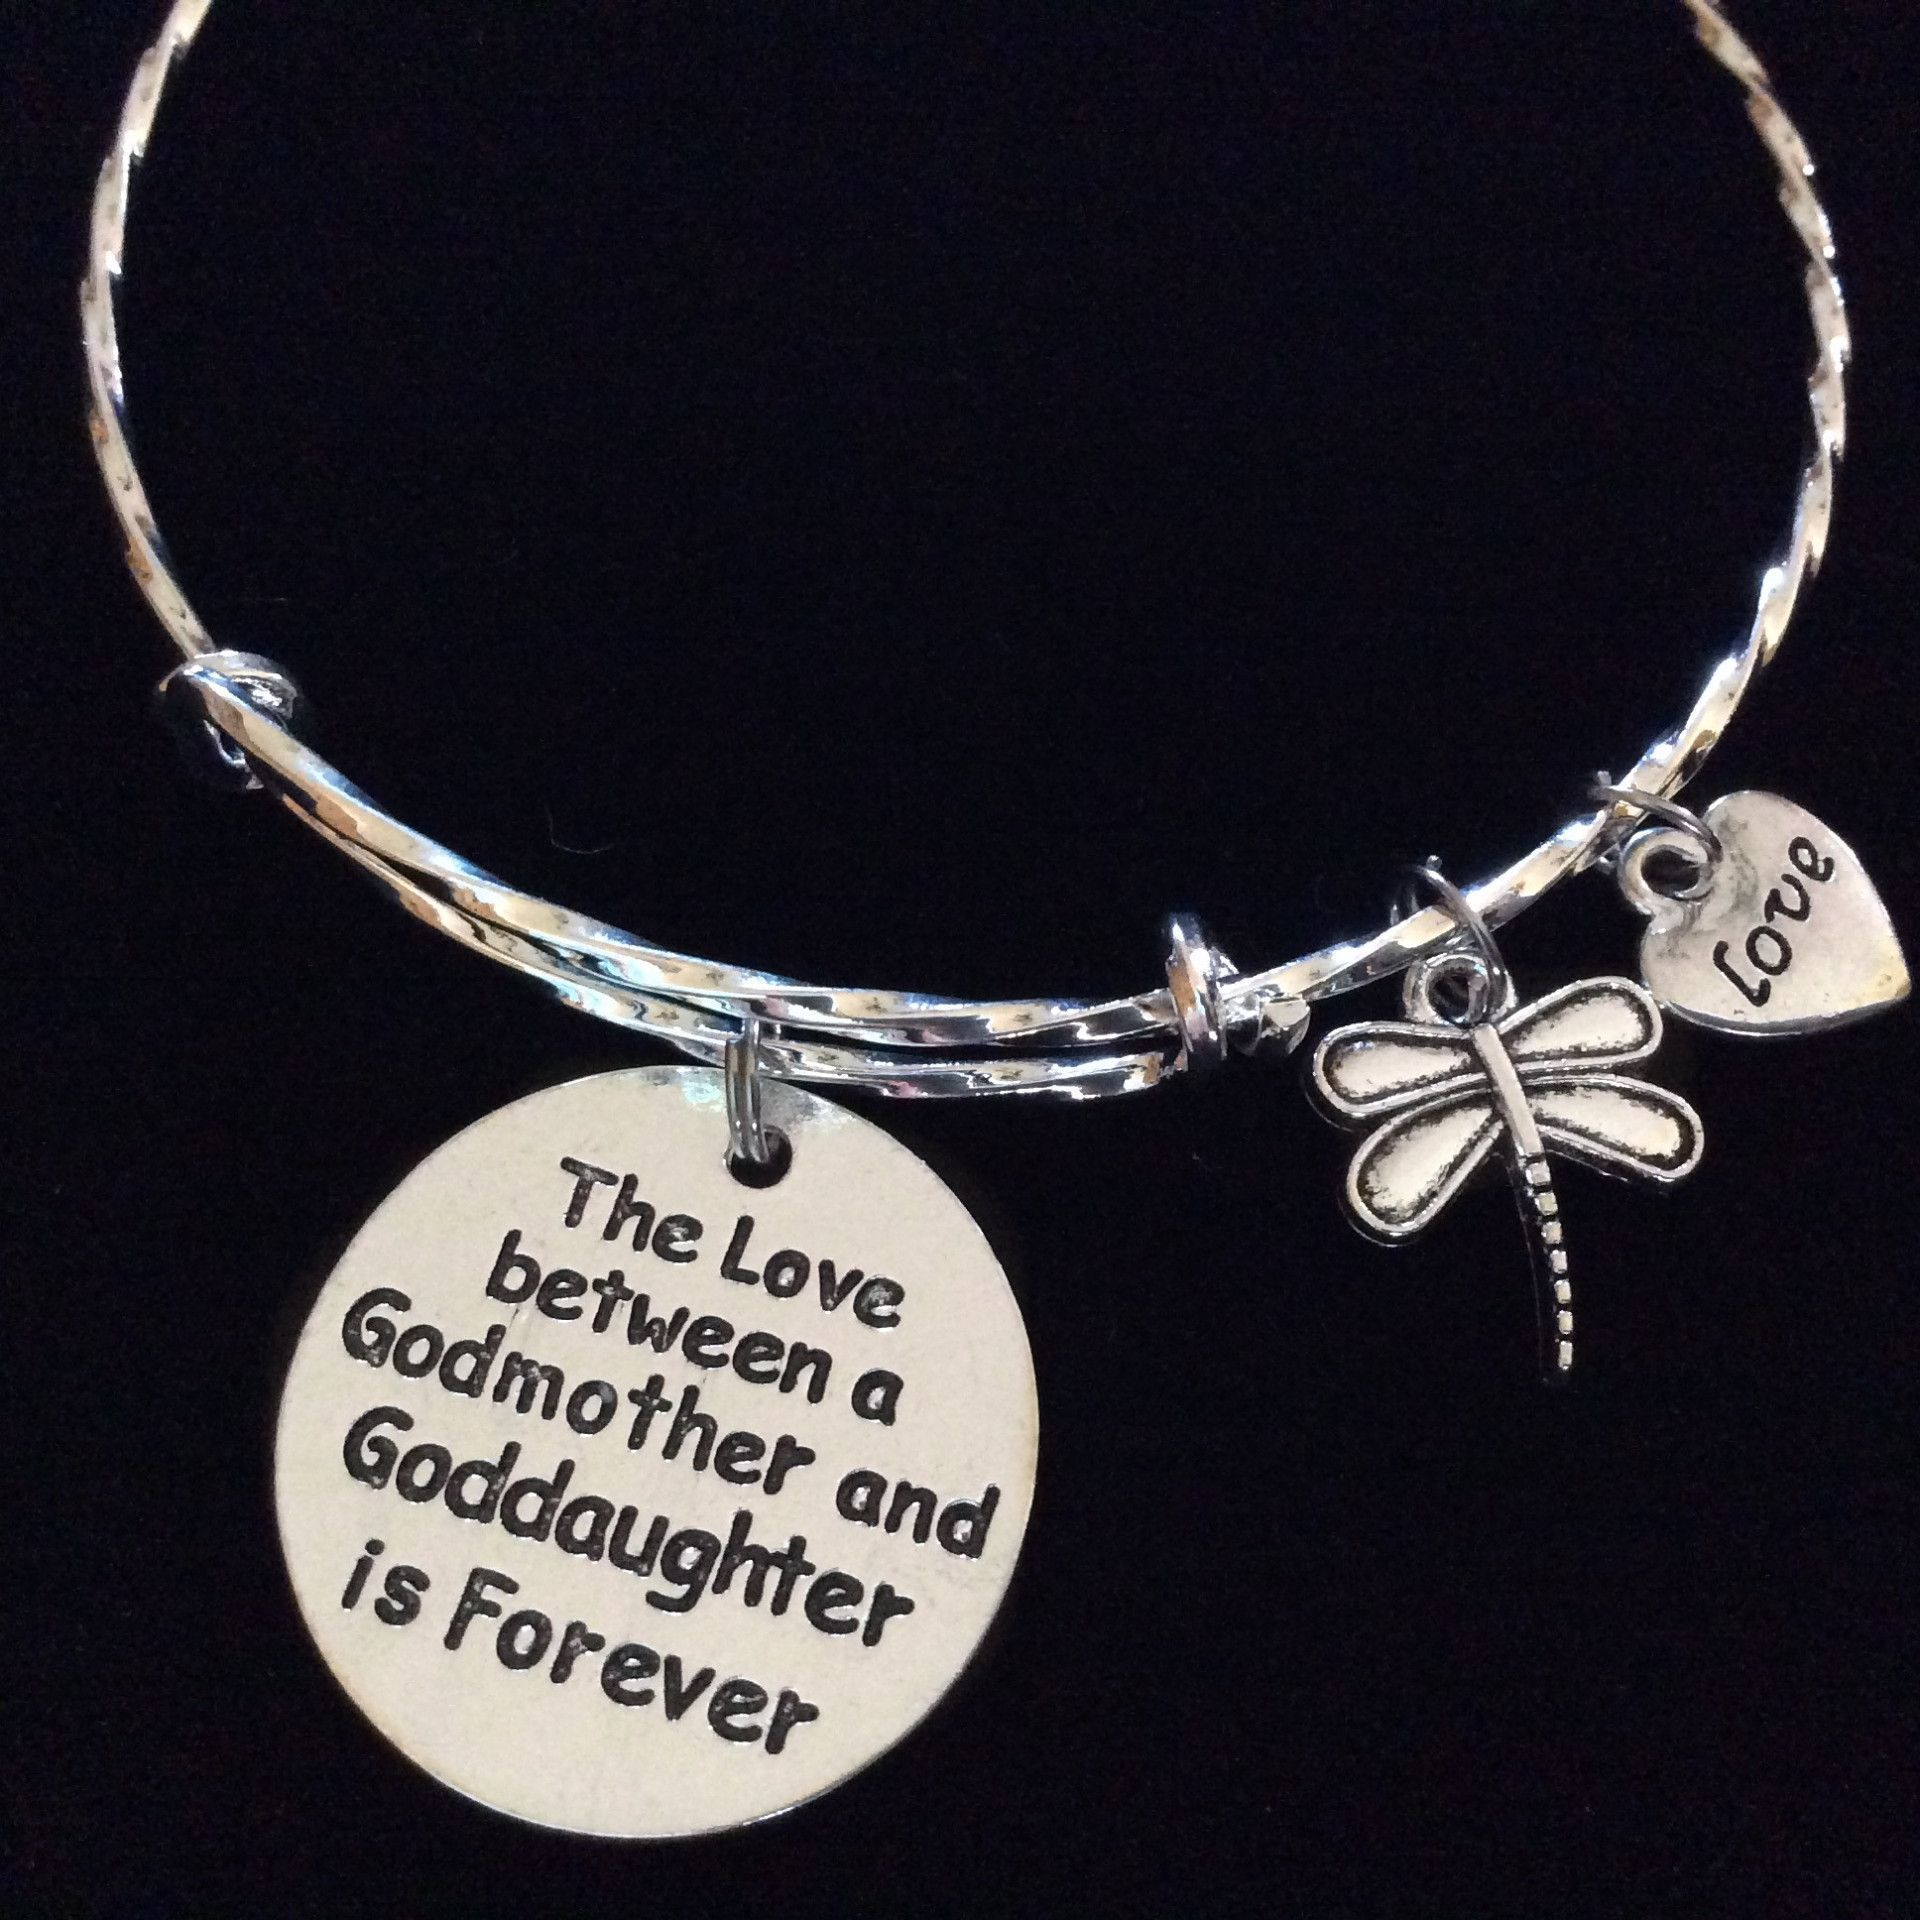 Godmother quotes funny quotesgram - Silver Stamped Word Quote Meaningful Charm Bracelet For Your God Child Or God Mother